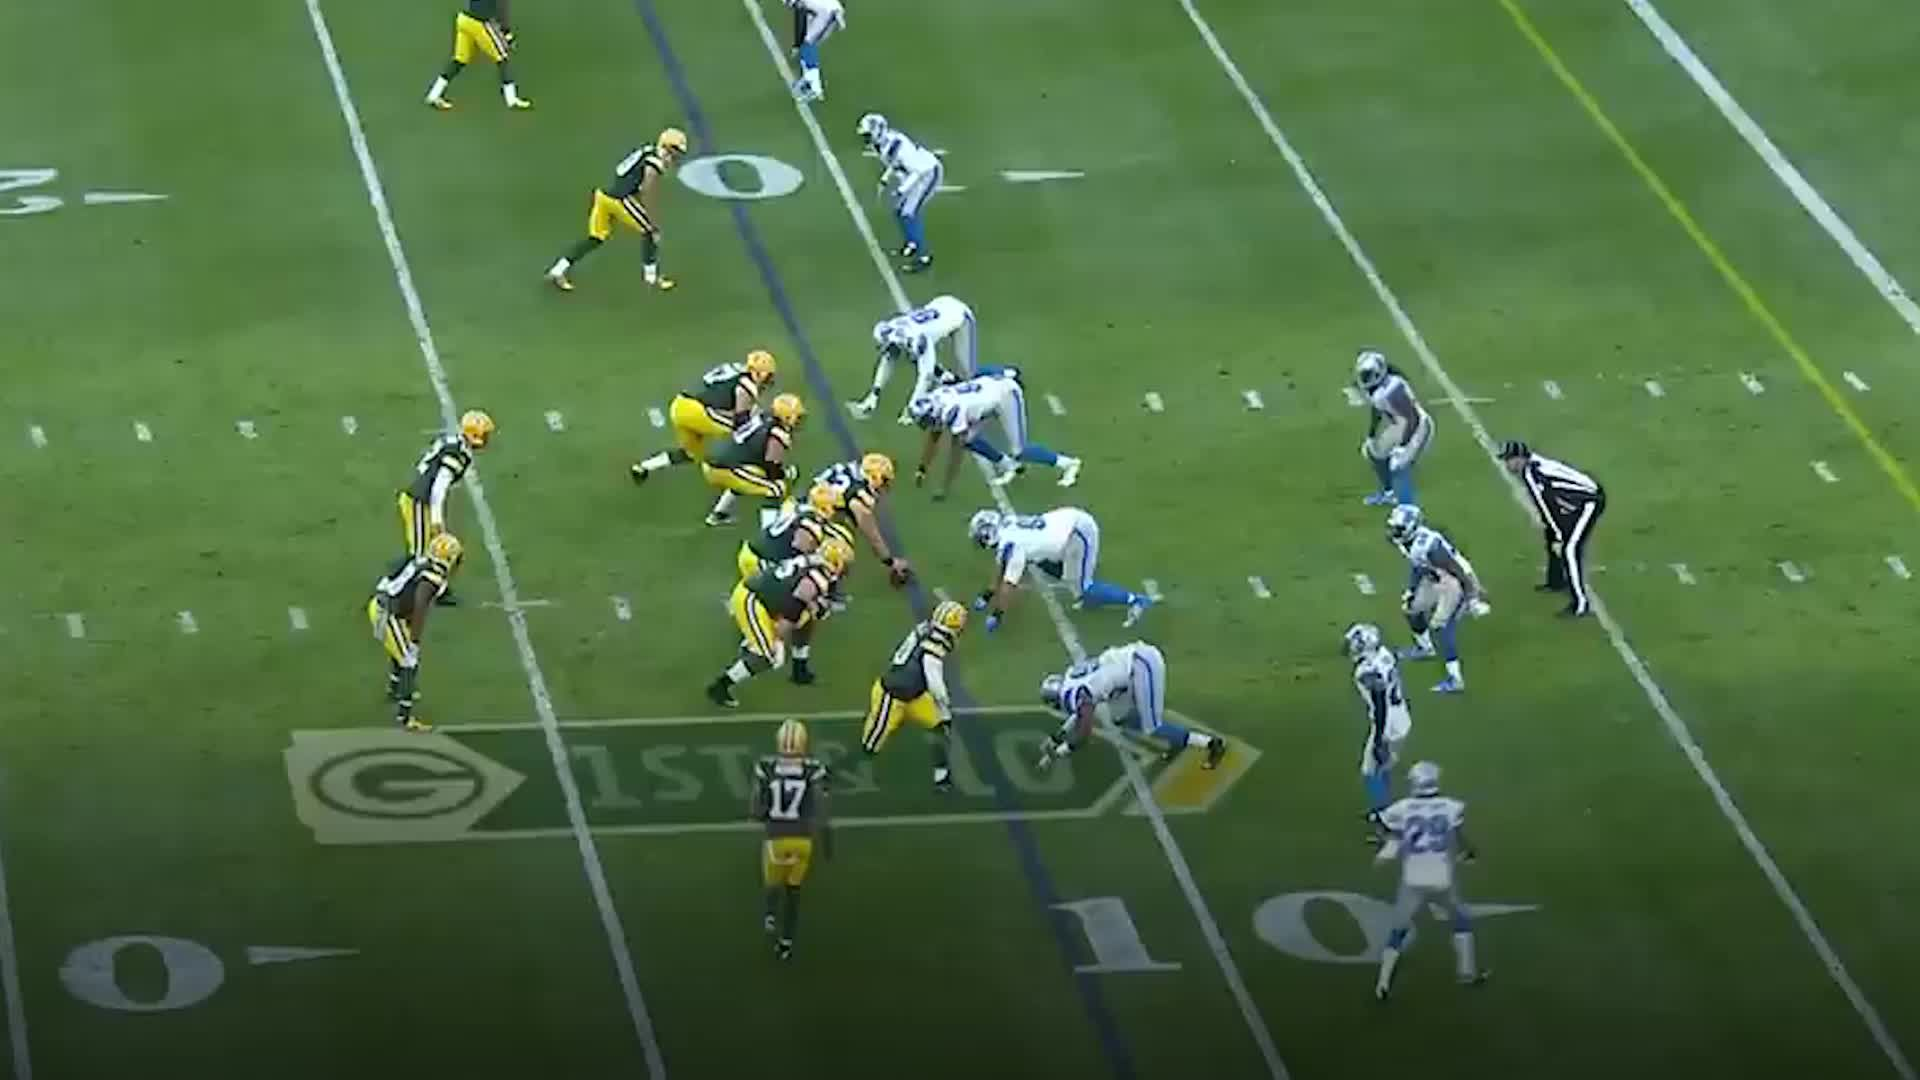 Lions only had 10 men on the field for Packers' game-winning field goal try